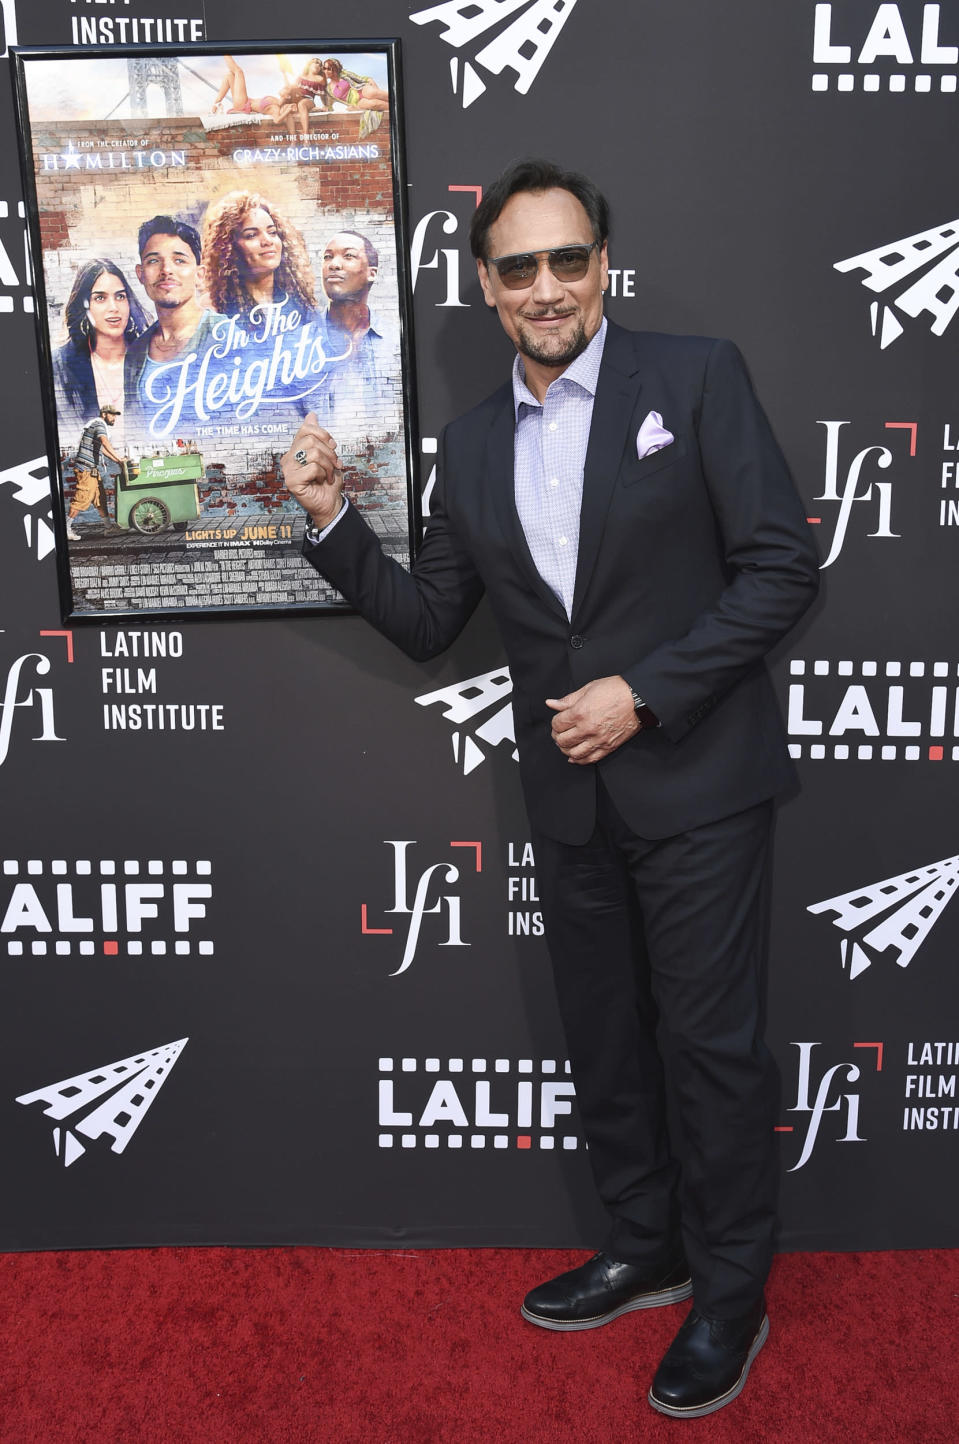 """Jimmy Smits arrives at a screening of """"In the Heights"""" during the Los Angeles Latino International Film Festival at TCL Chinese Theatre on Friday, June 4, 2021, in Los Angeles. (Photo by Richard Shotwell/Invision/AP)"""